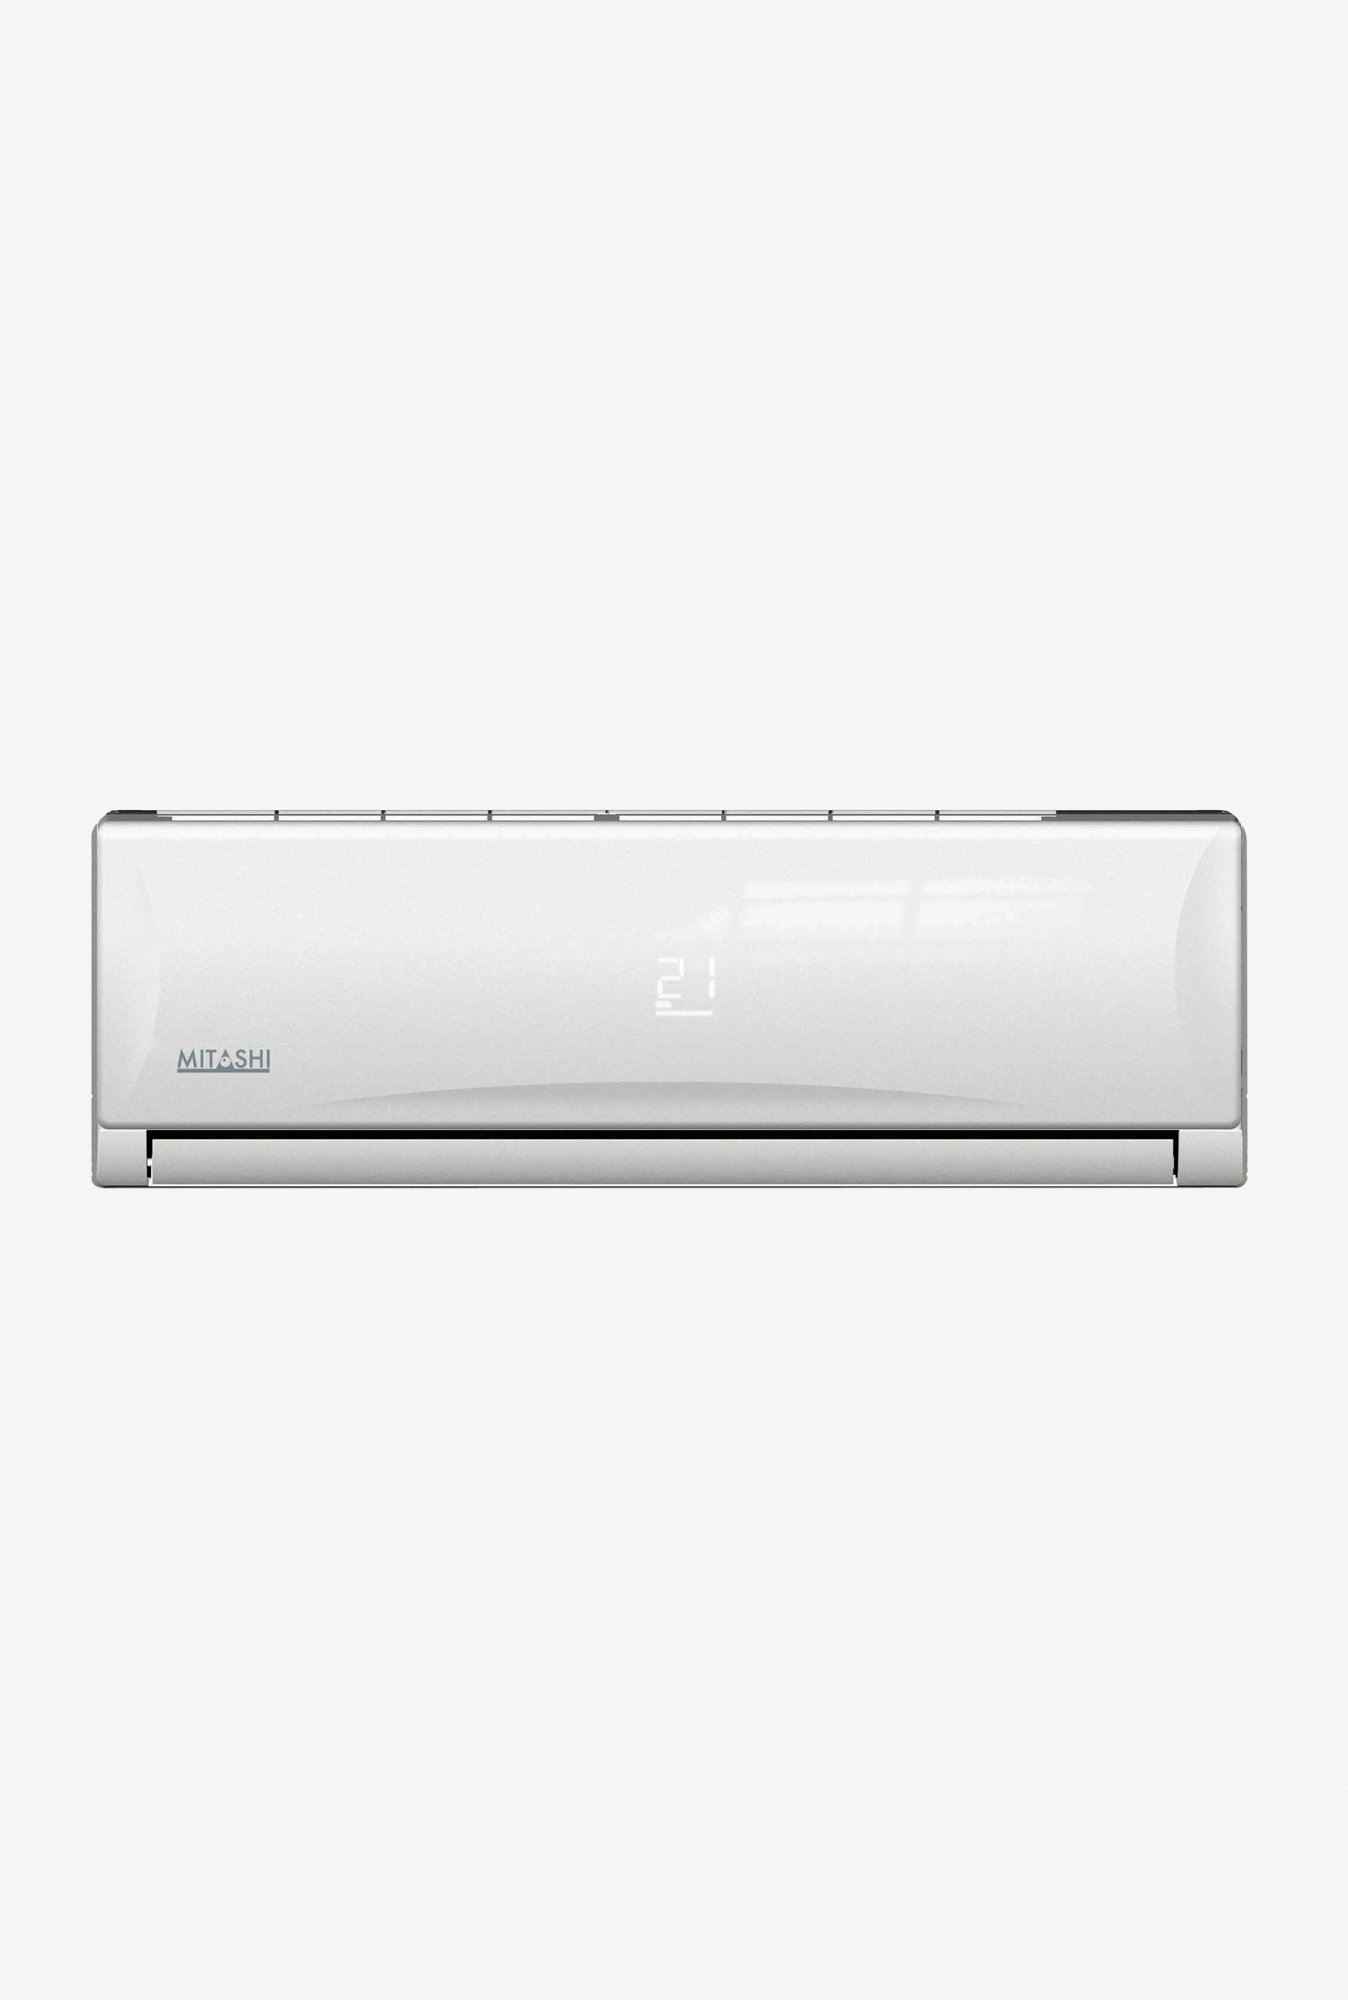 Mitashi MiSAC155v10 1.5 Ton 5 Star Split AC Copper (White)